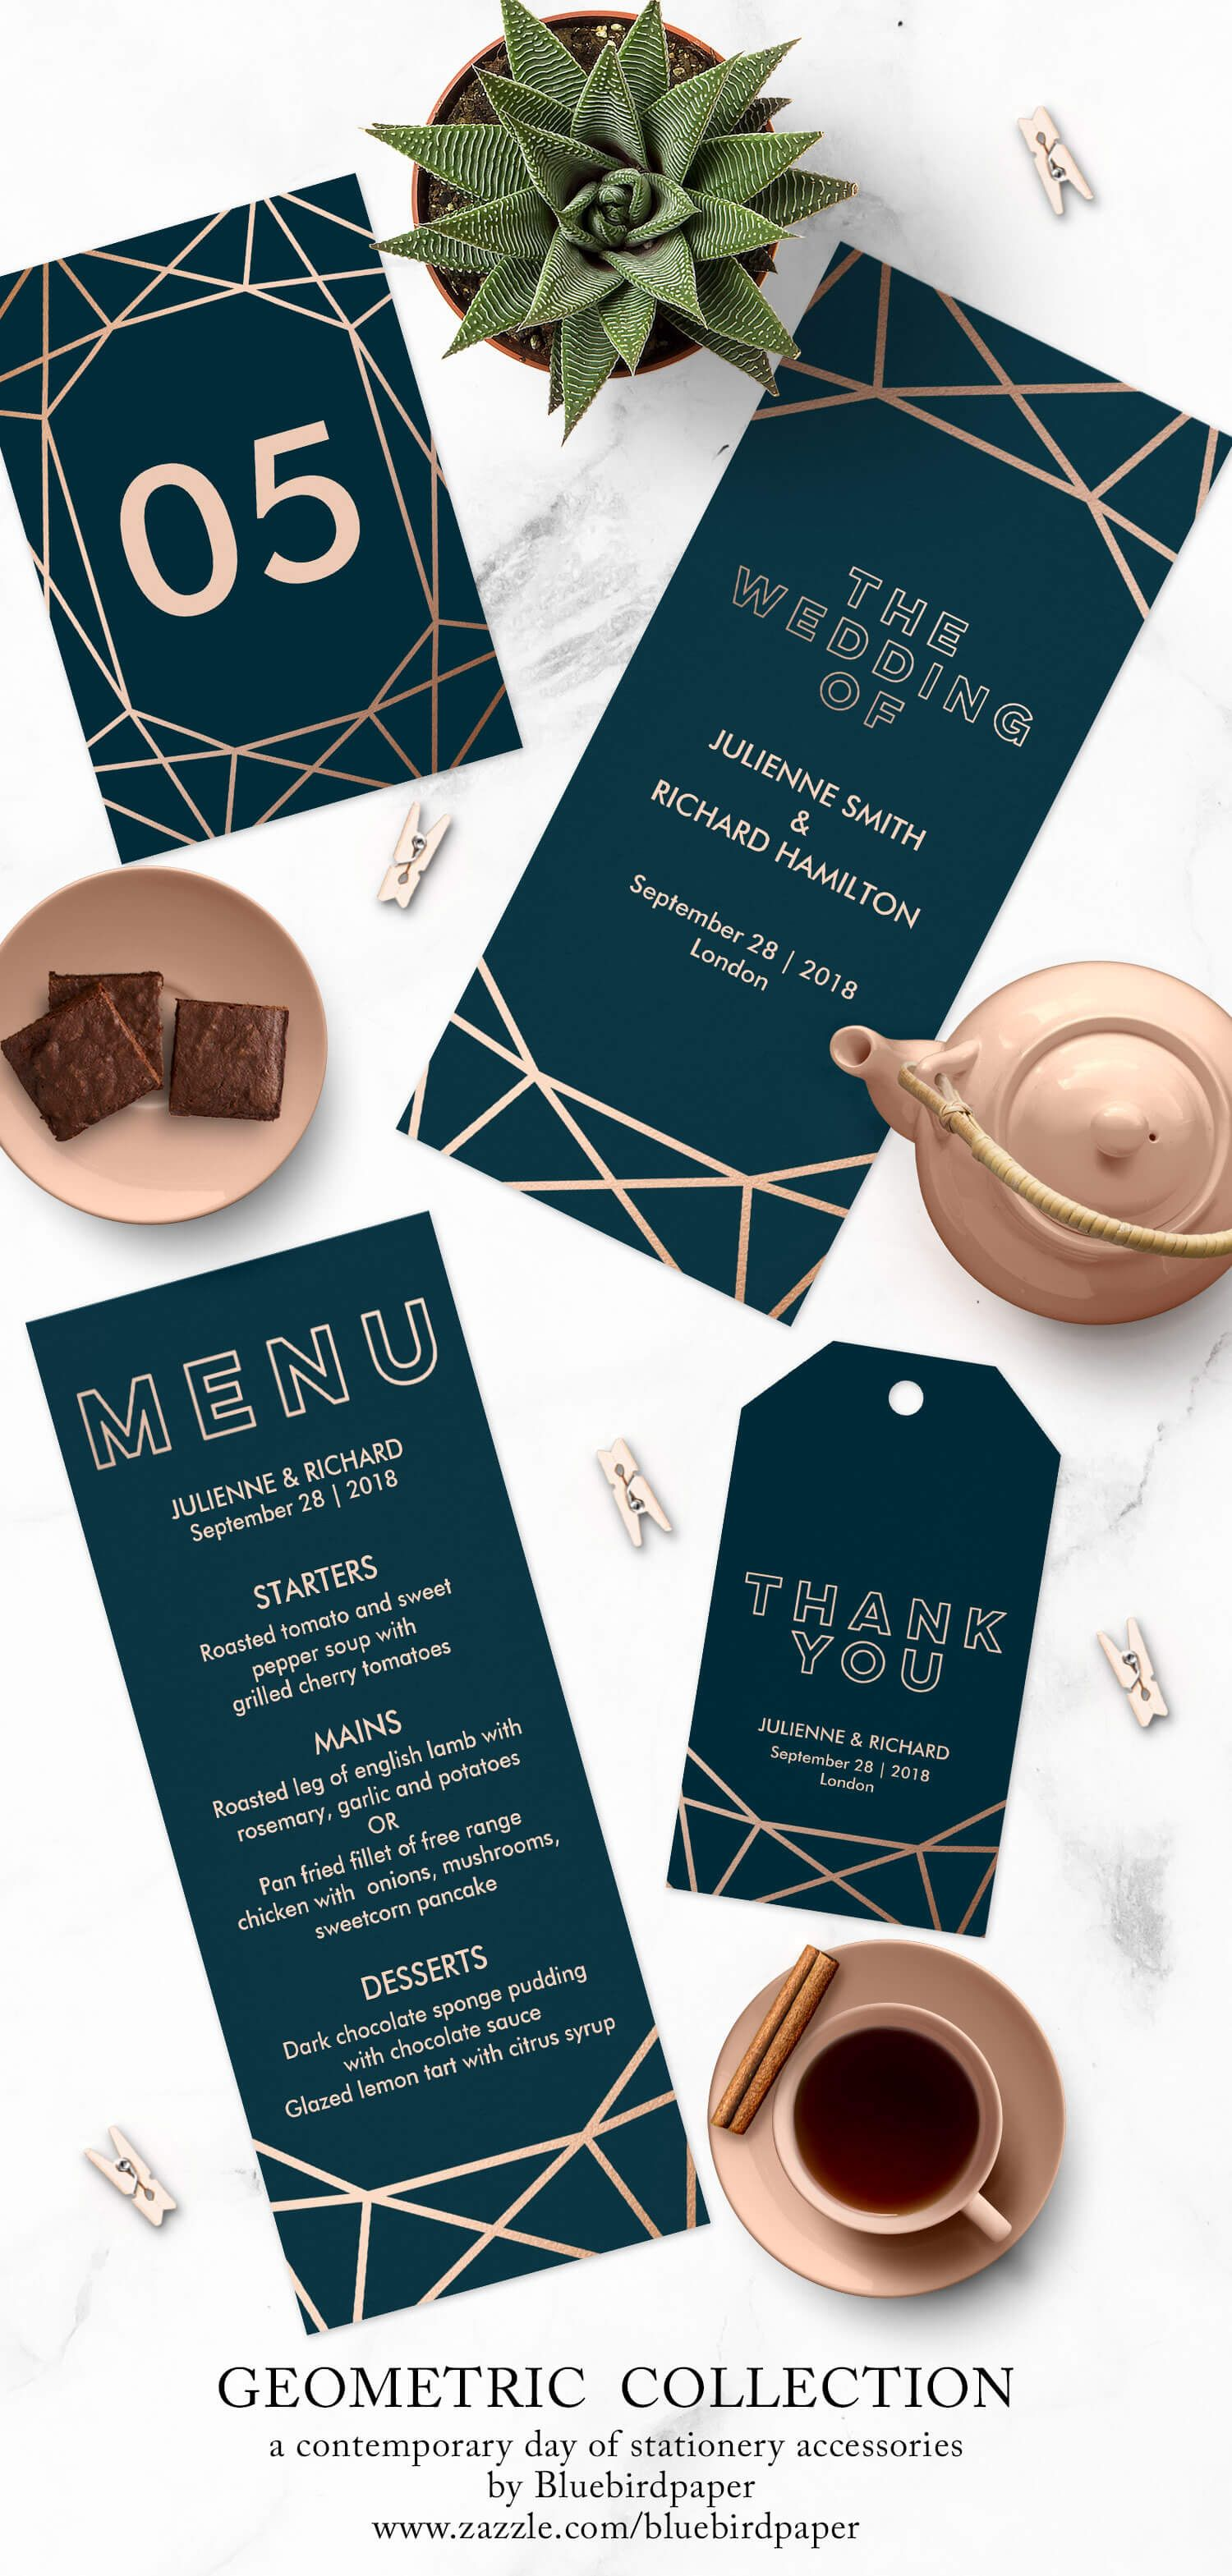 Geometric Collection A Modern Winter Wedding Stationery Includes Accessories As Program